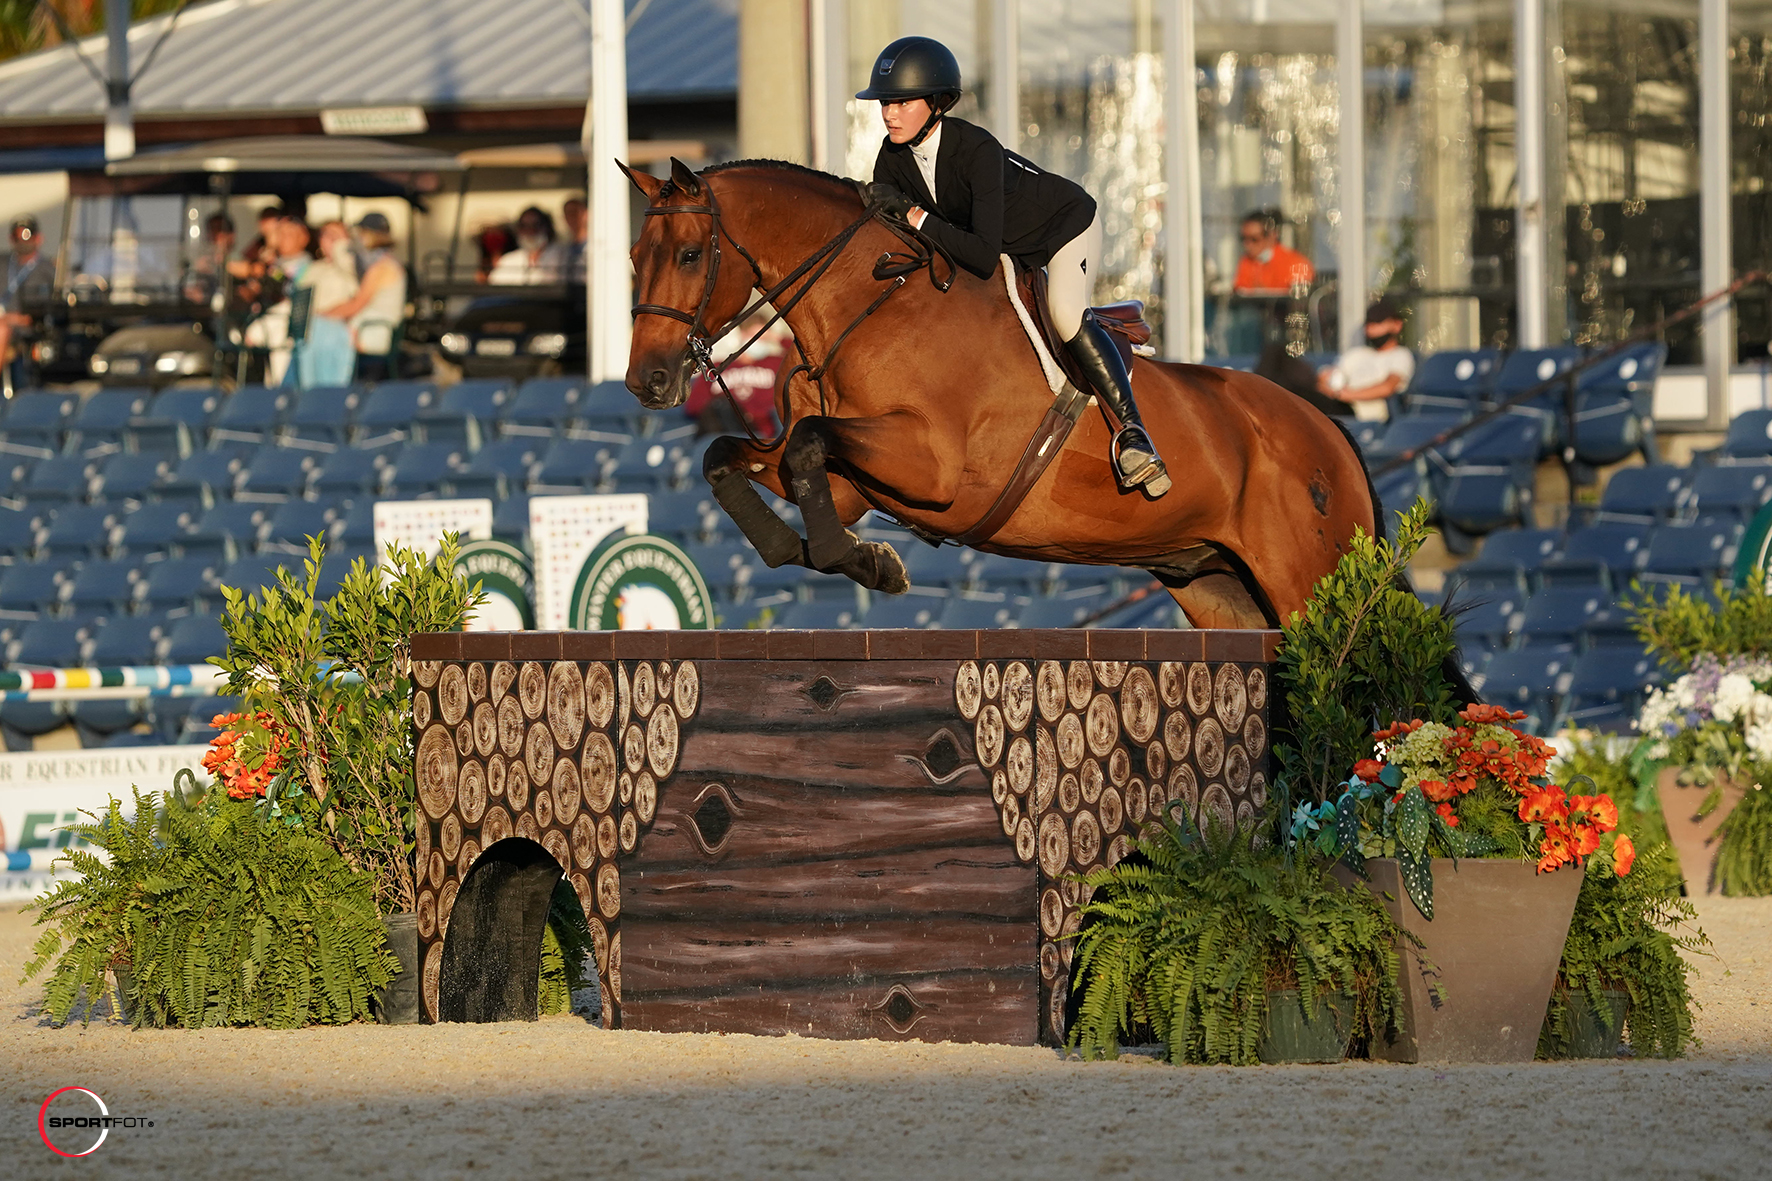 Zayna Rizvi and Finnick Eq 623_8277 Sportfot